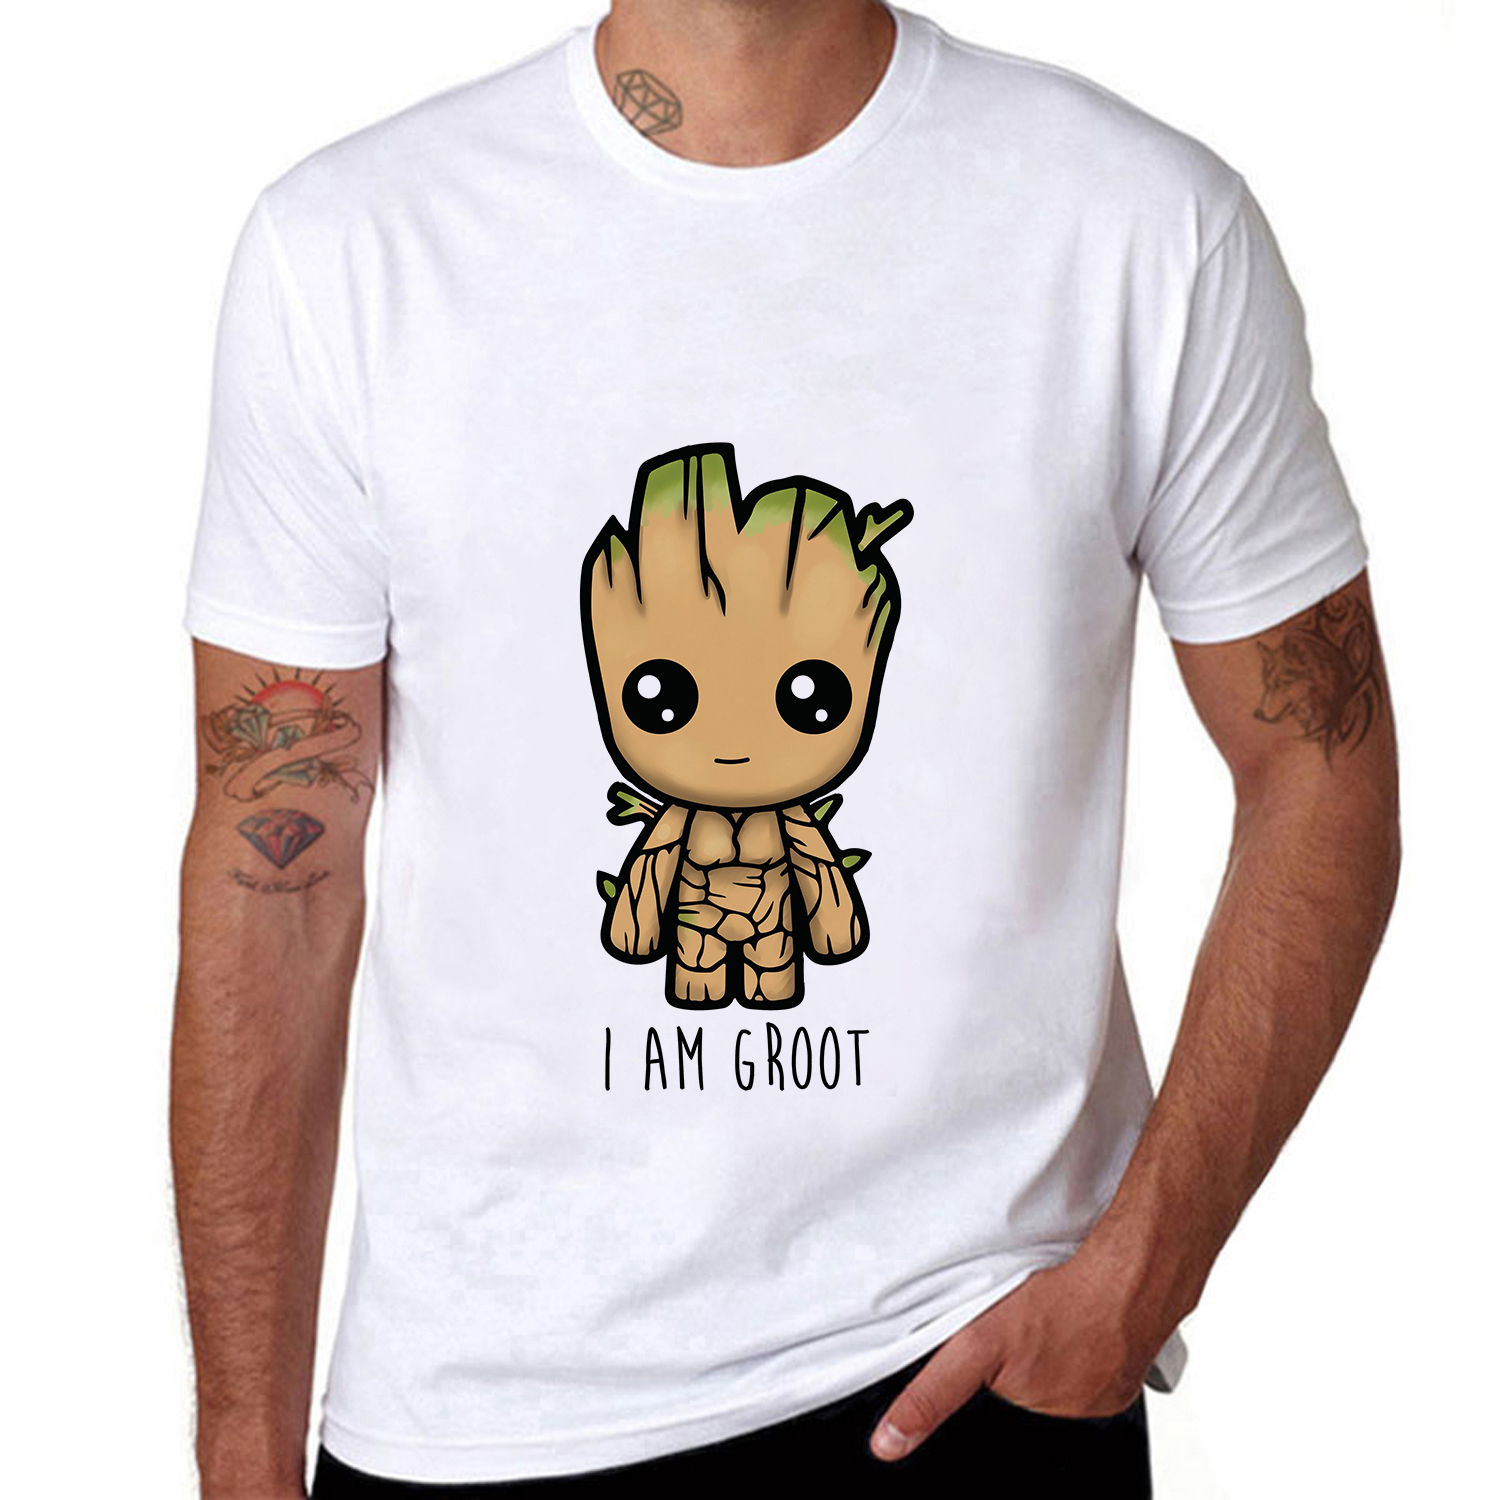 Guardians of the Galaxy Funny I AM GROOT Men s T-shirt Short Sleeve Tee Tops c1c92a7fb